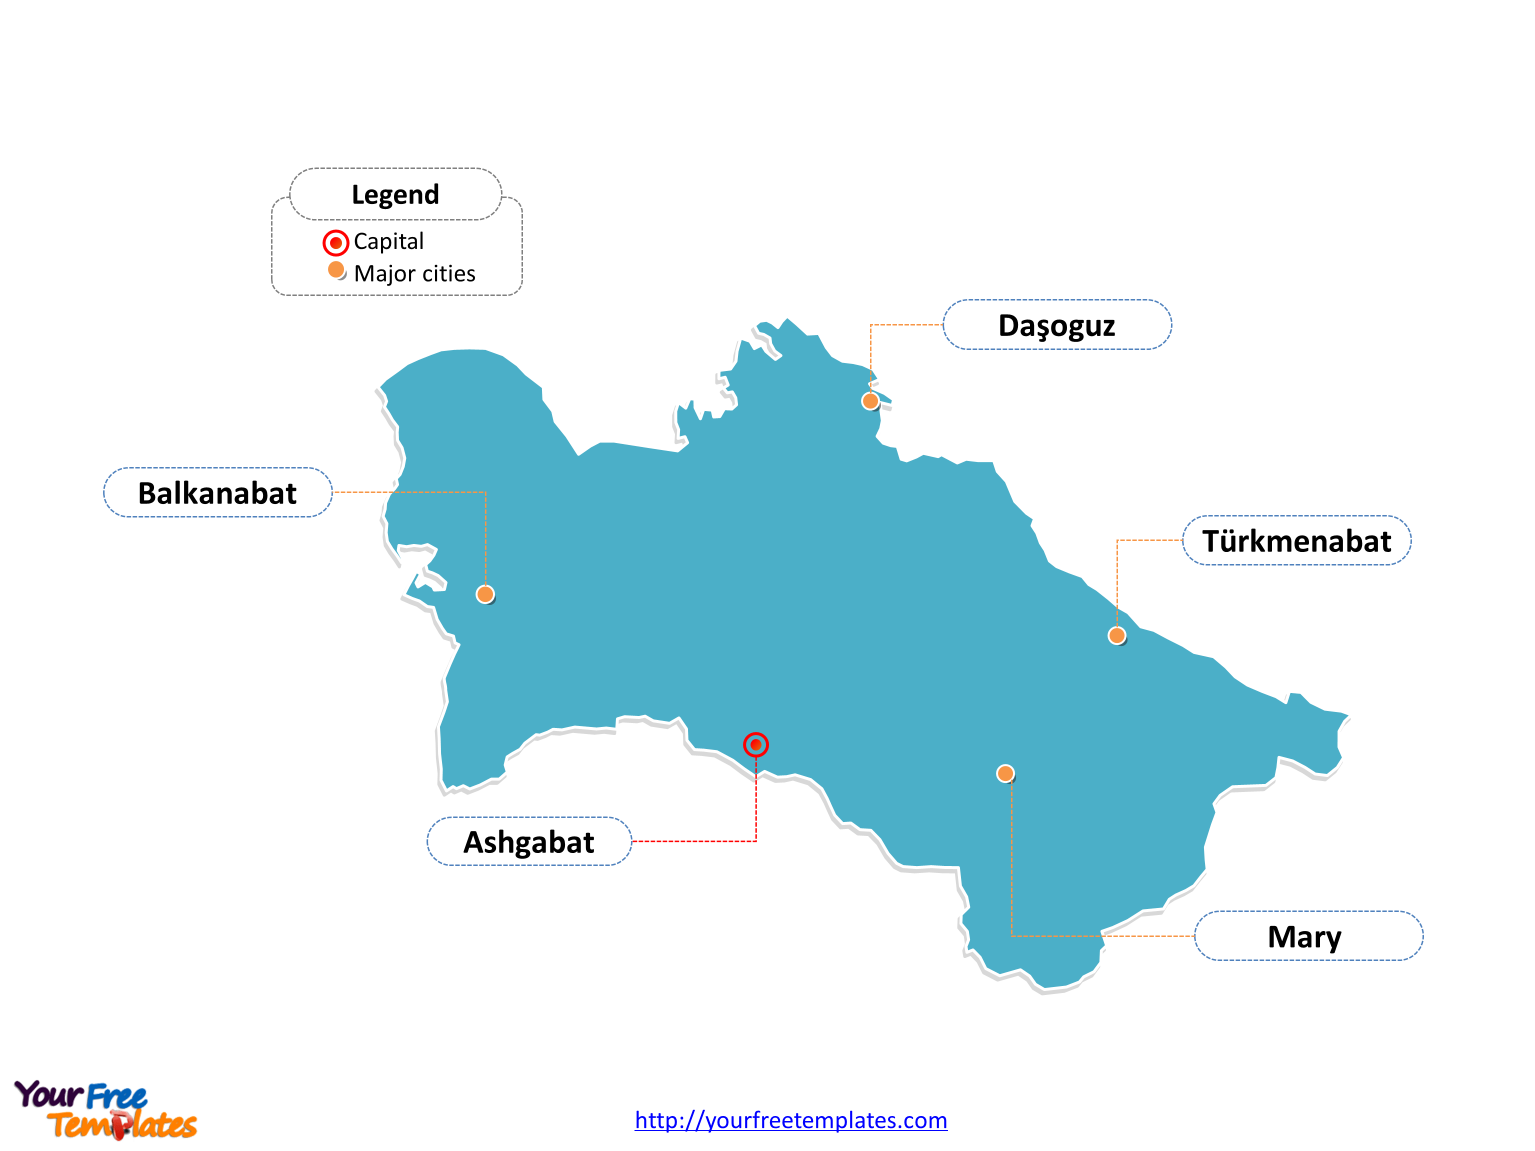 Turkmenistan Outline map labeled with cities